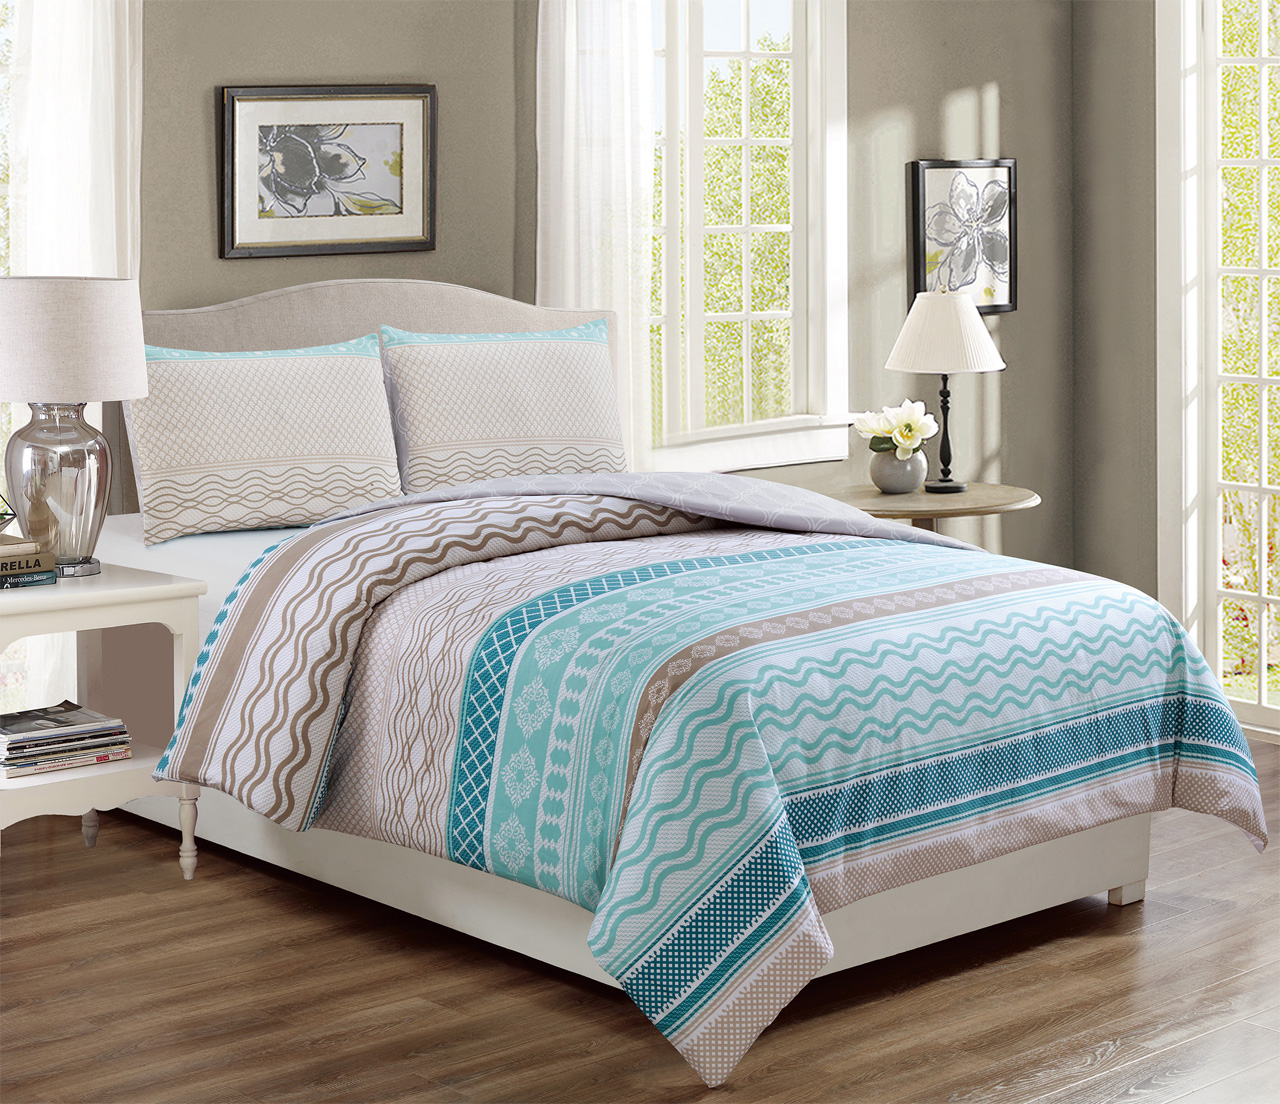 bedding with your western comforter gorgeous queen teal present duvet for cover brown endearing turquoise covers set king home fancy modern and comforters